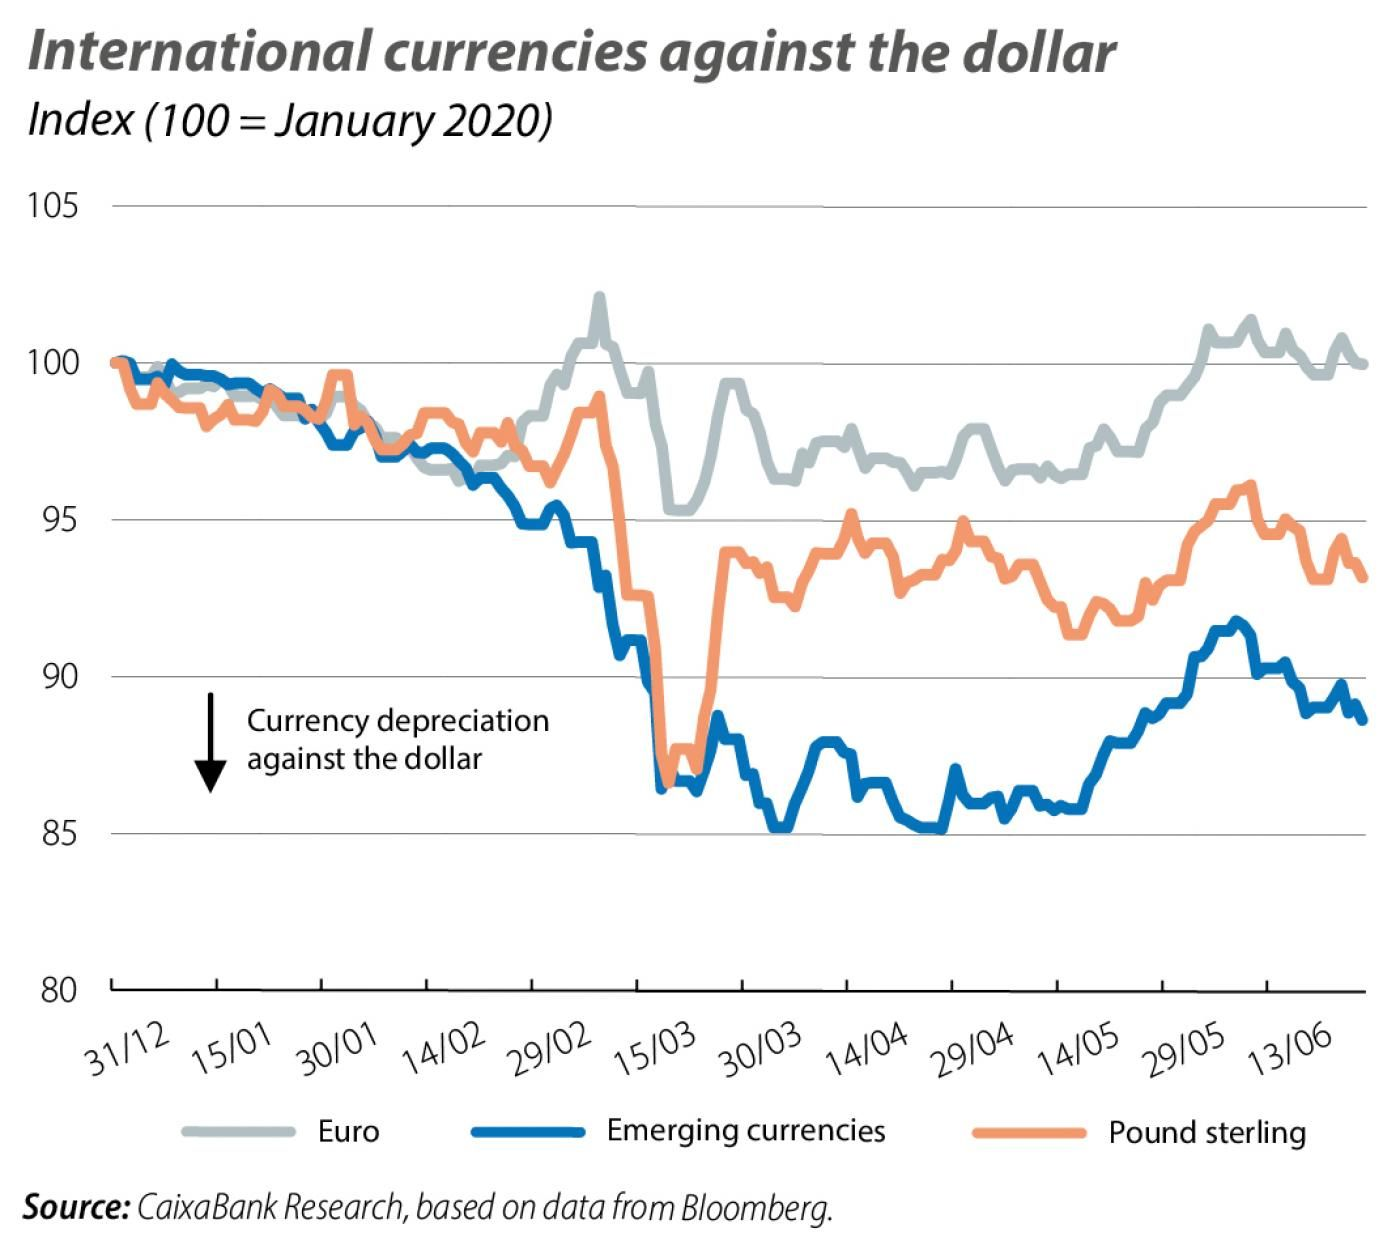 International currencies against the dollar